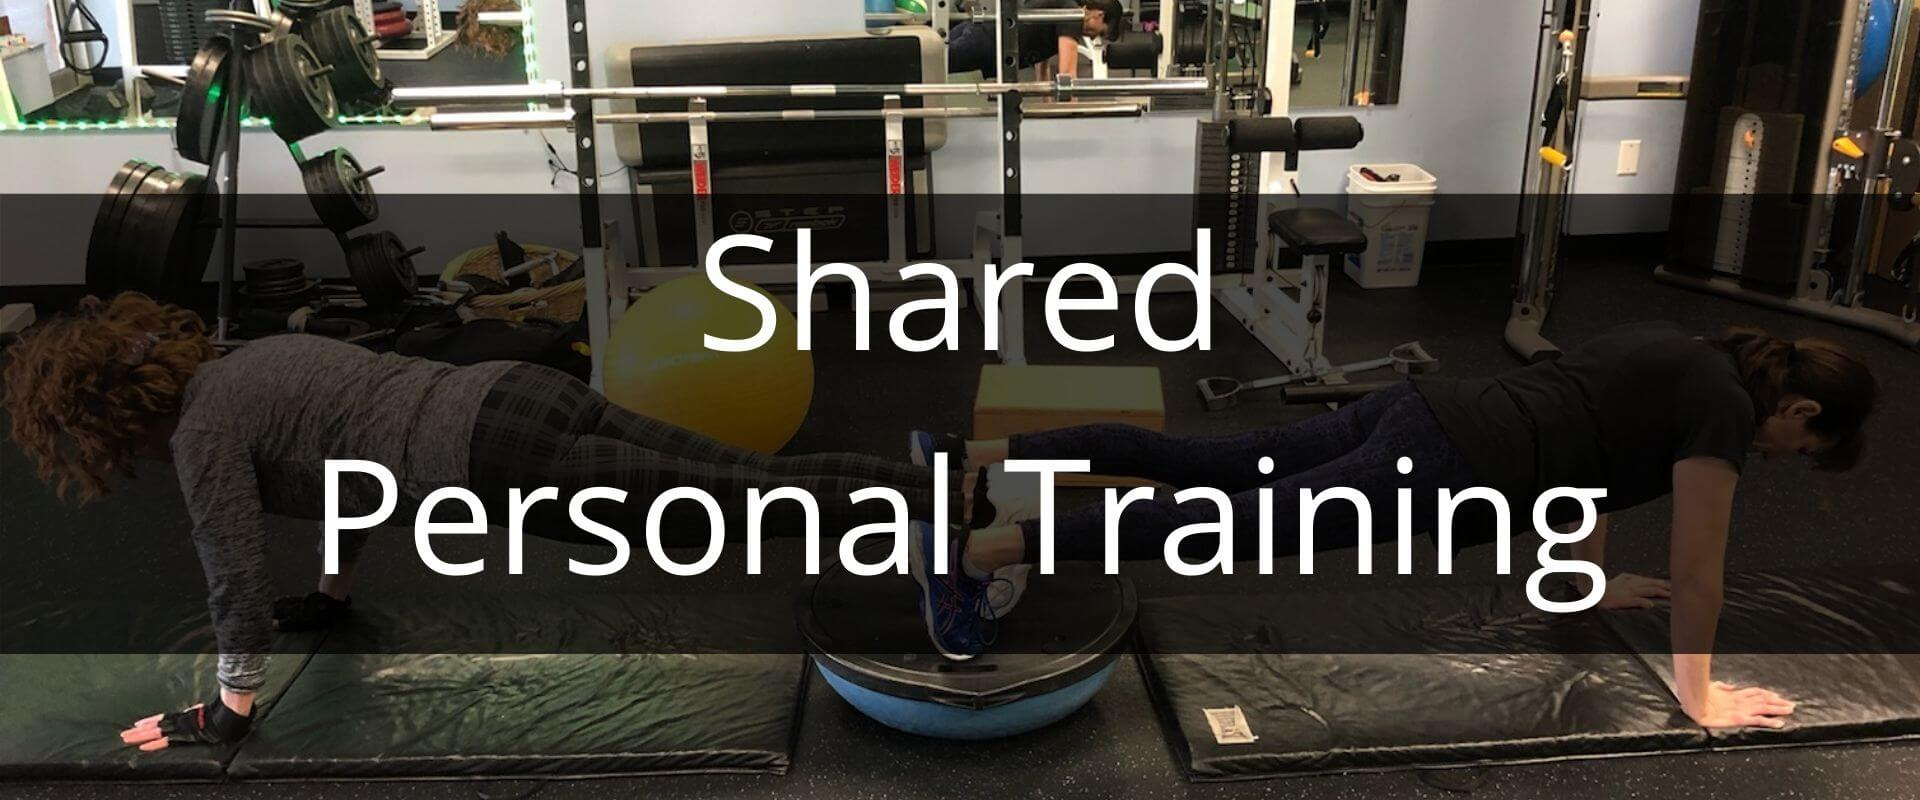 Shared Personal Training Thumbnail